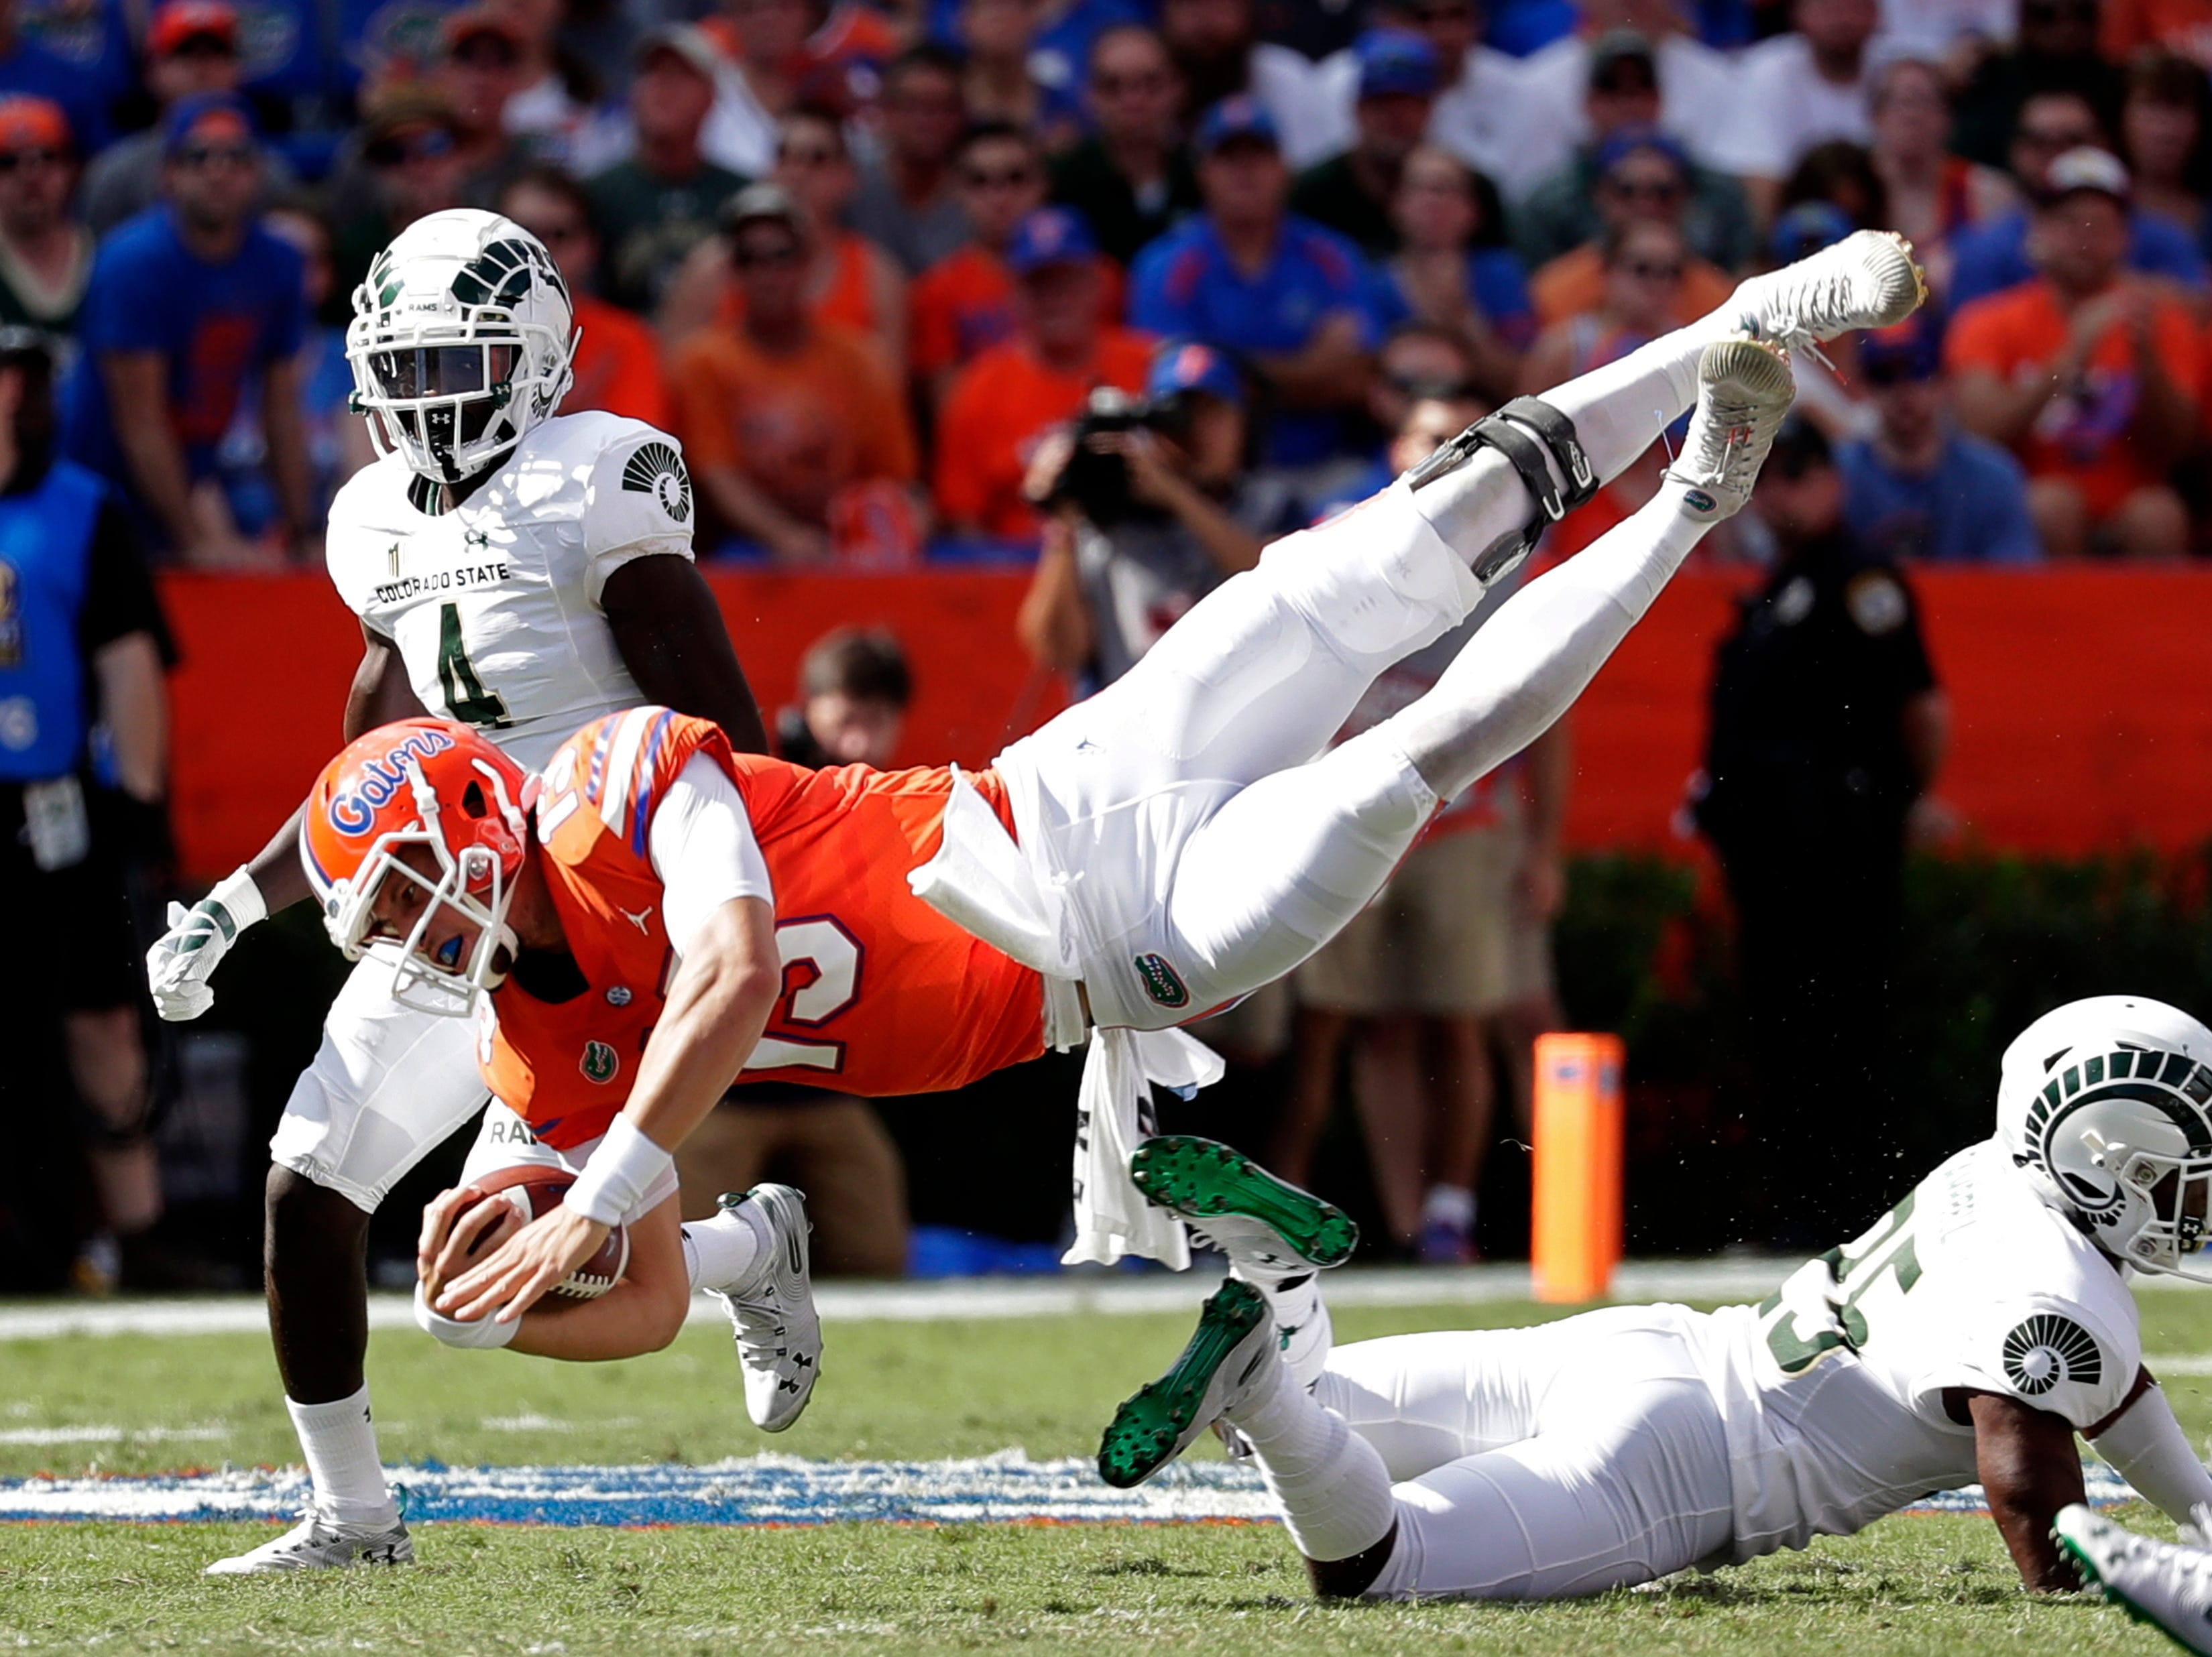 Florida quarterback Feleipe Franks (13) is upended by Colorado State cornerback Darius Campbell (25) during the first half of an NCAA college football game, Saturday, Sept. 15, 2018, in Gainesville, Fla. (AP Photo/John Raoux)